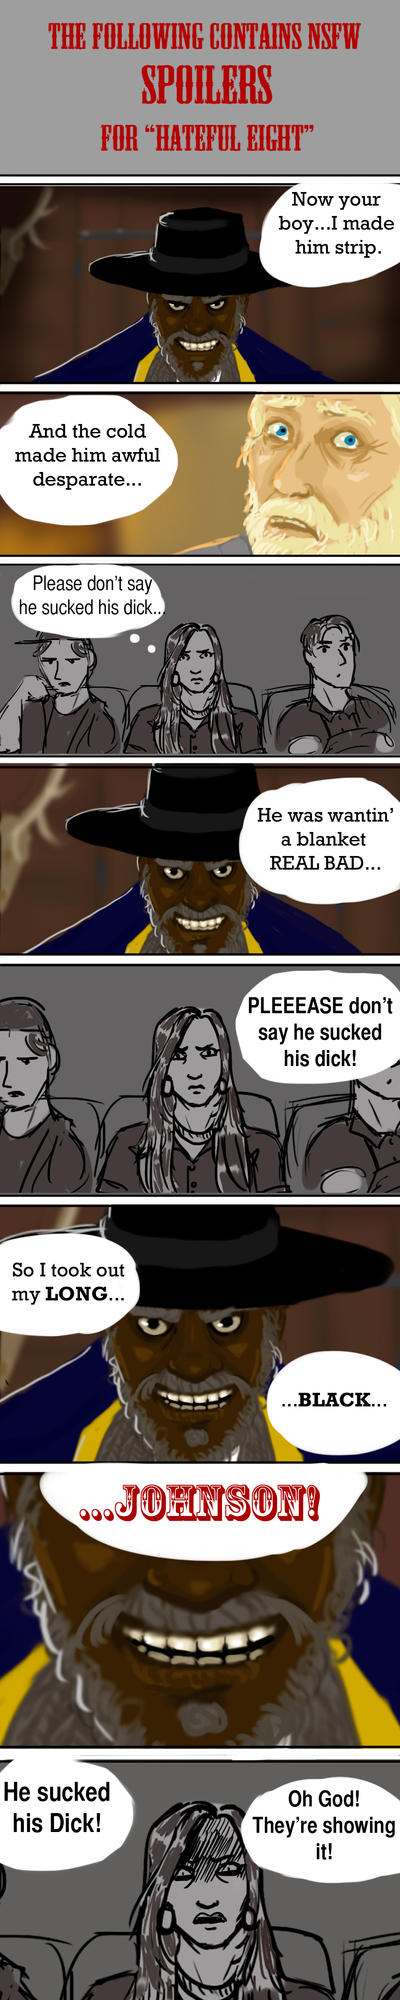 Don't Be a Dick - Hateful Eight Spoiler Alert by Andi-the-Duke